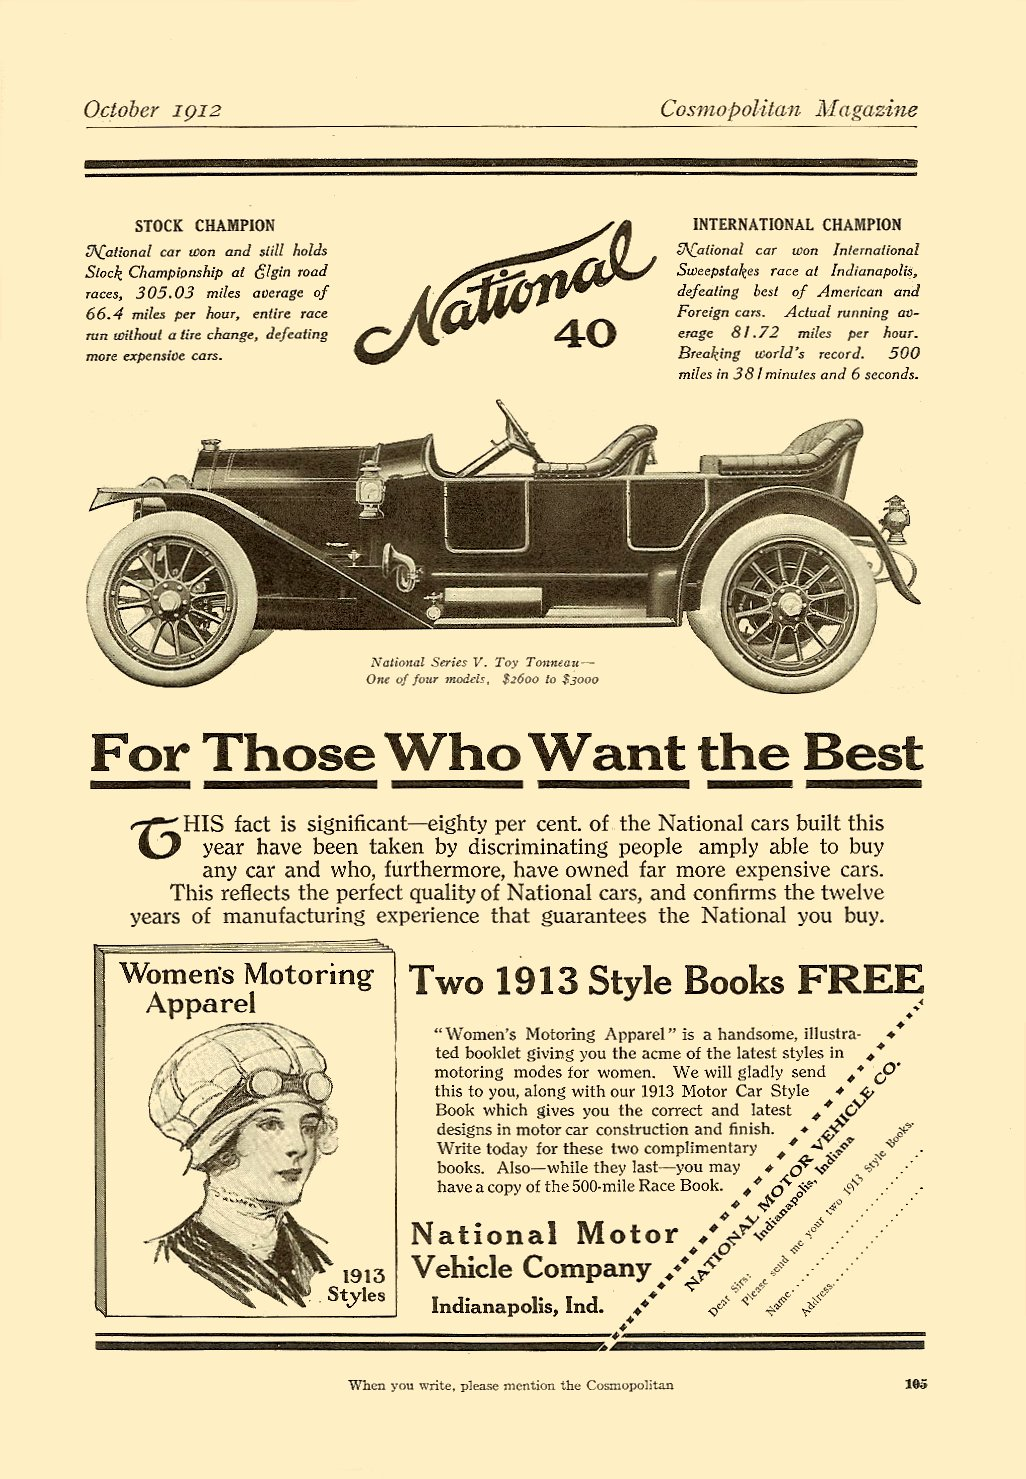 1912 10 National 40 For Those Who Want the Best October 1912 Cosmopolitan magazine 6.75″x9.75″ page 105